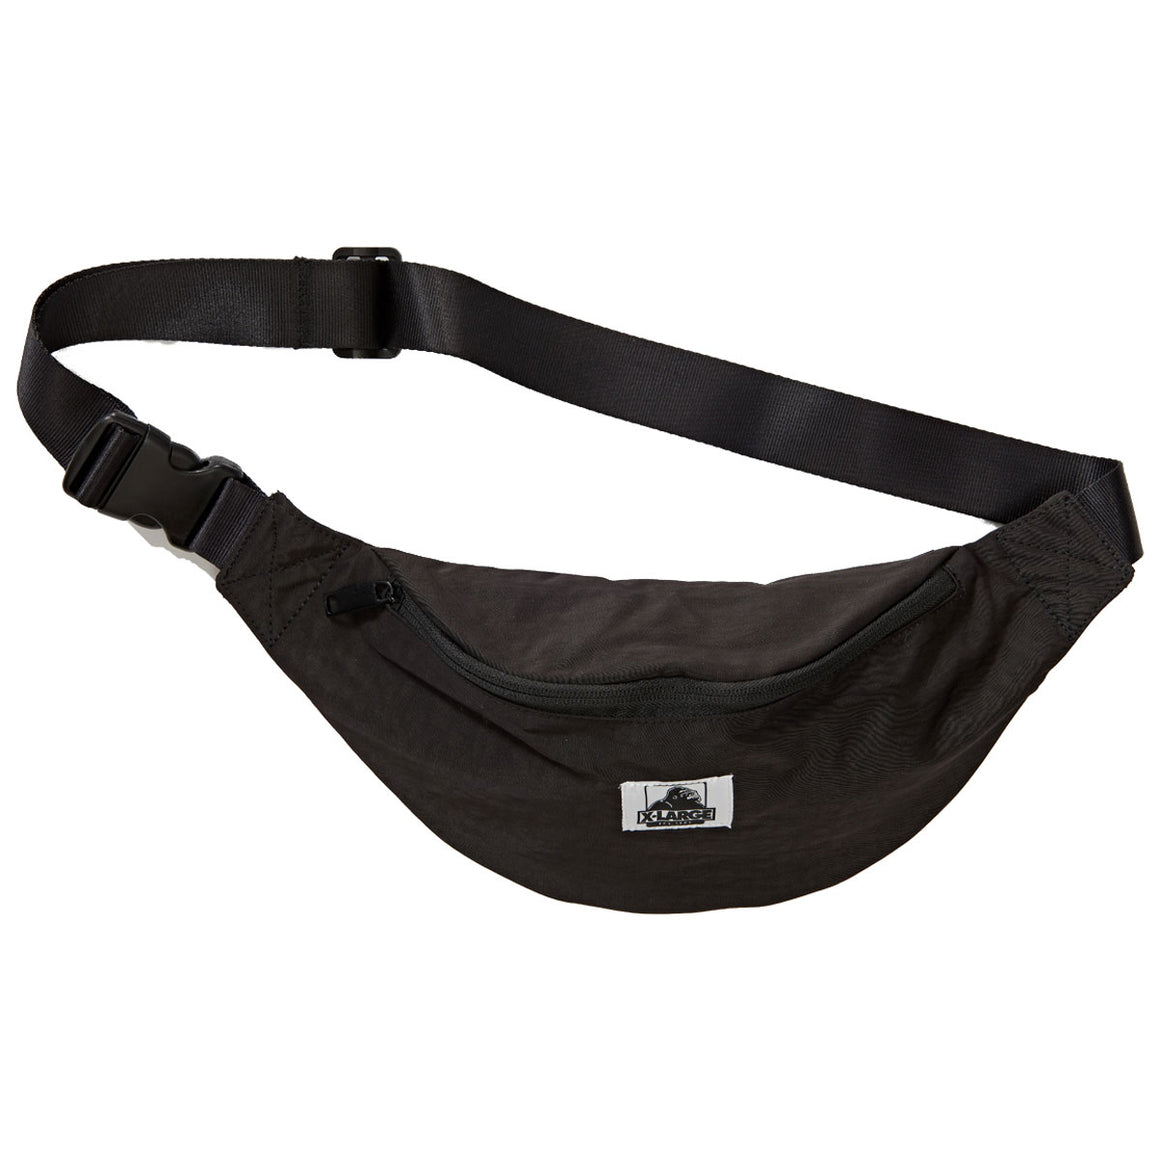 Classic OG Waist Bag, Accessories  - XLarge Brand